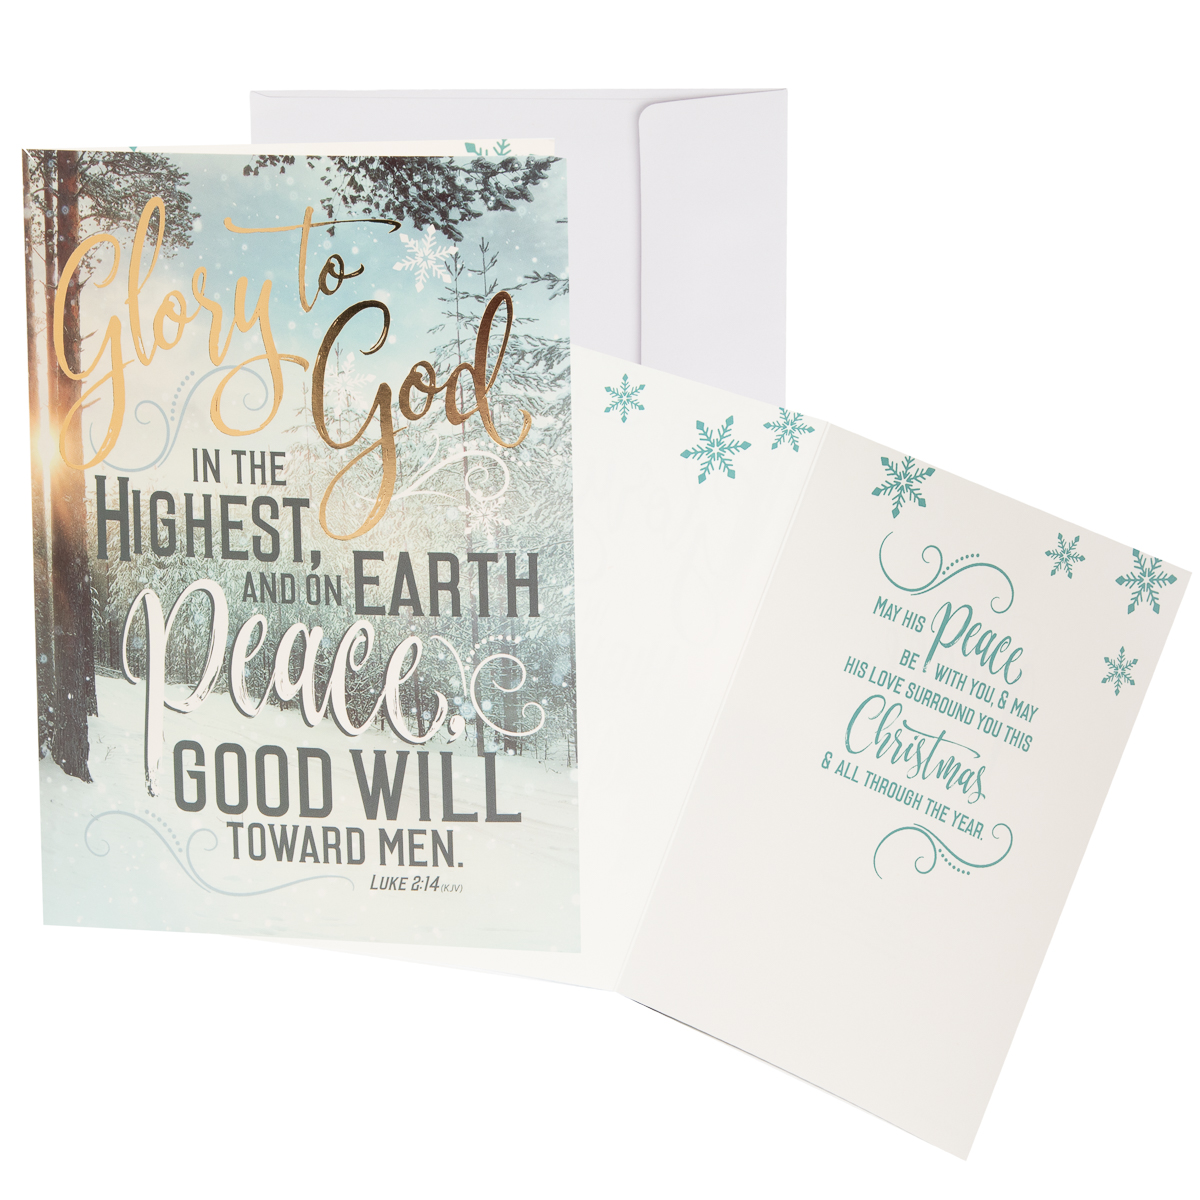 48pk-Merry-Christmas-Cards-Bulk-Assortment-Holiday-Card-Pack-with-Foil-amp-Glitter thumbnail 18